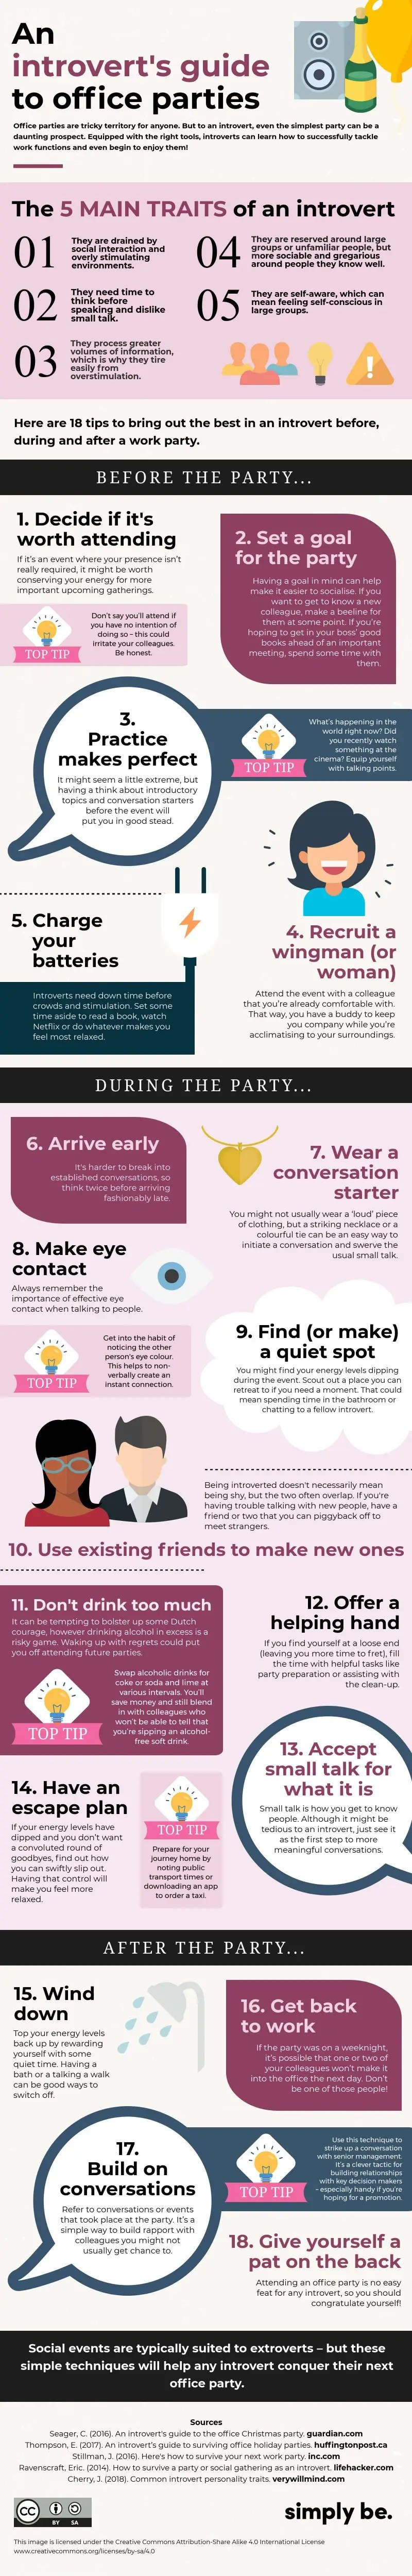 An introvert's guide to office parties_reduced